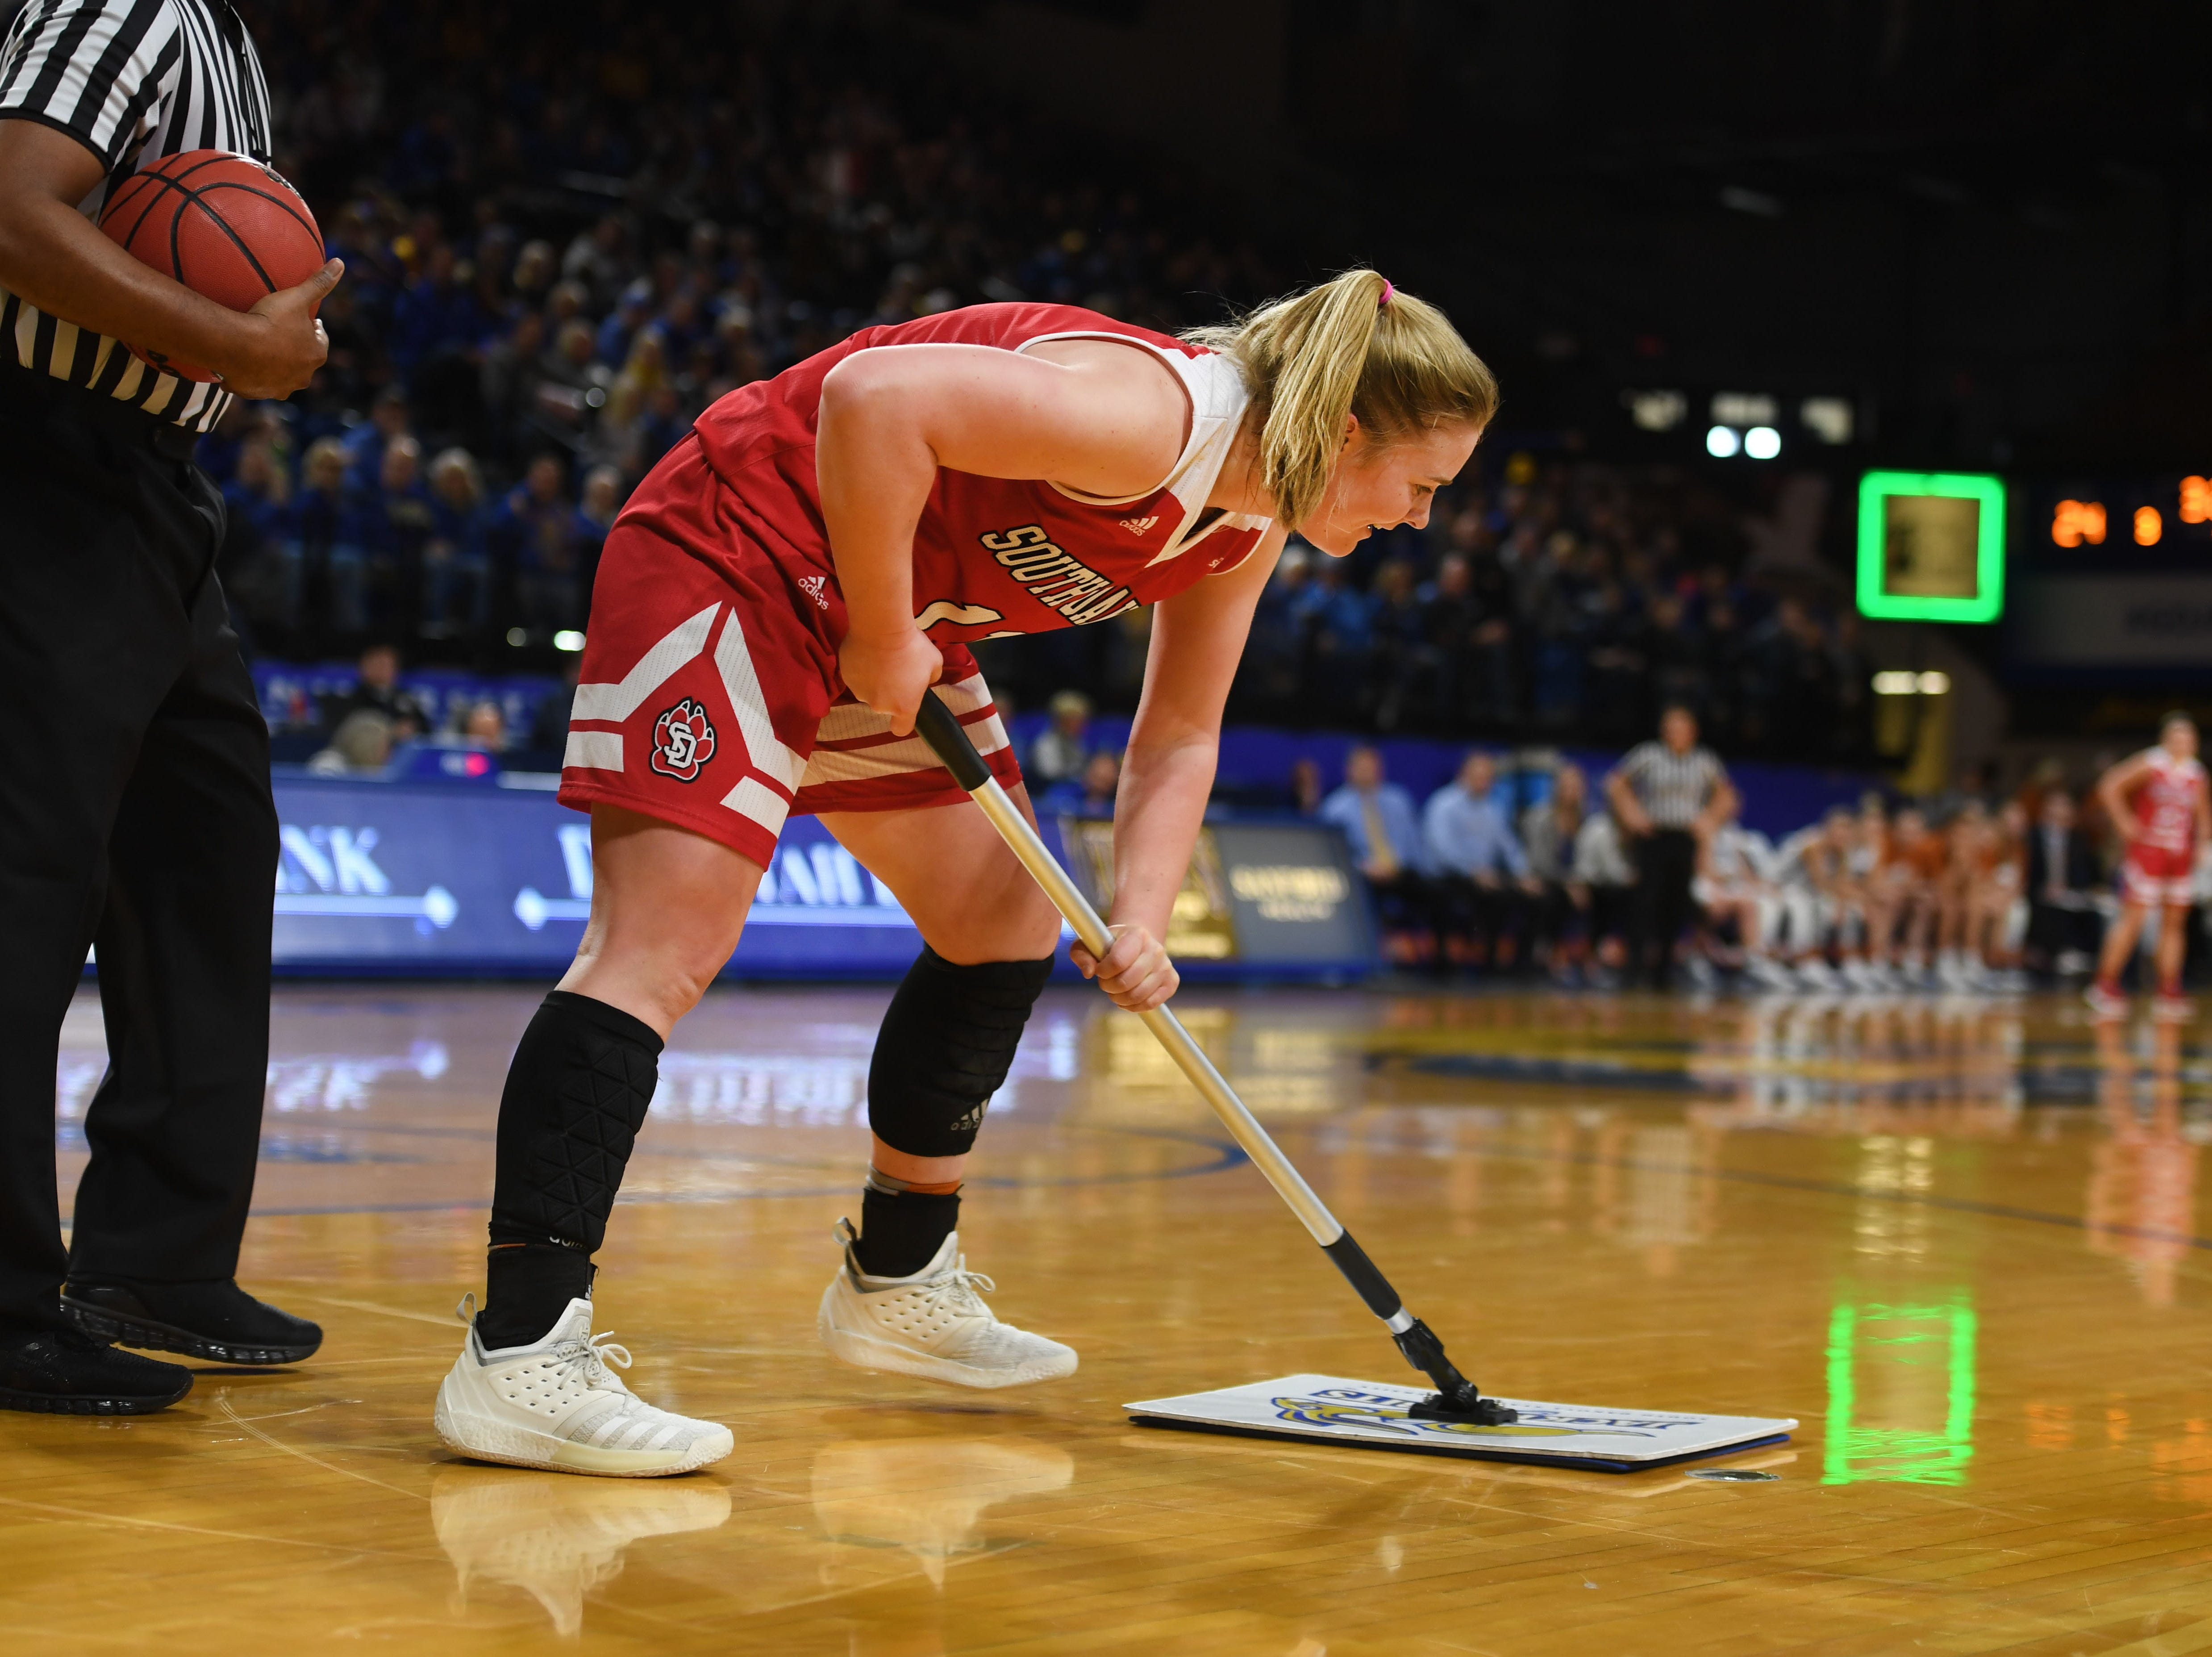 USD's Monica Arens sweeps the floor during the game against SDSU Sunday, Feb. 24, at Frost Arena in Brookings.